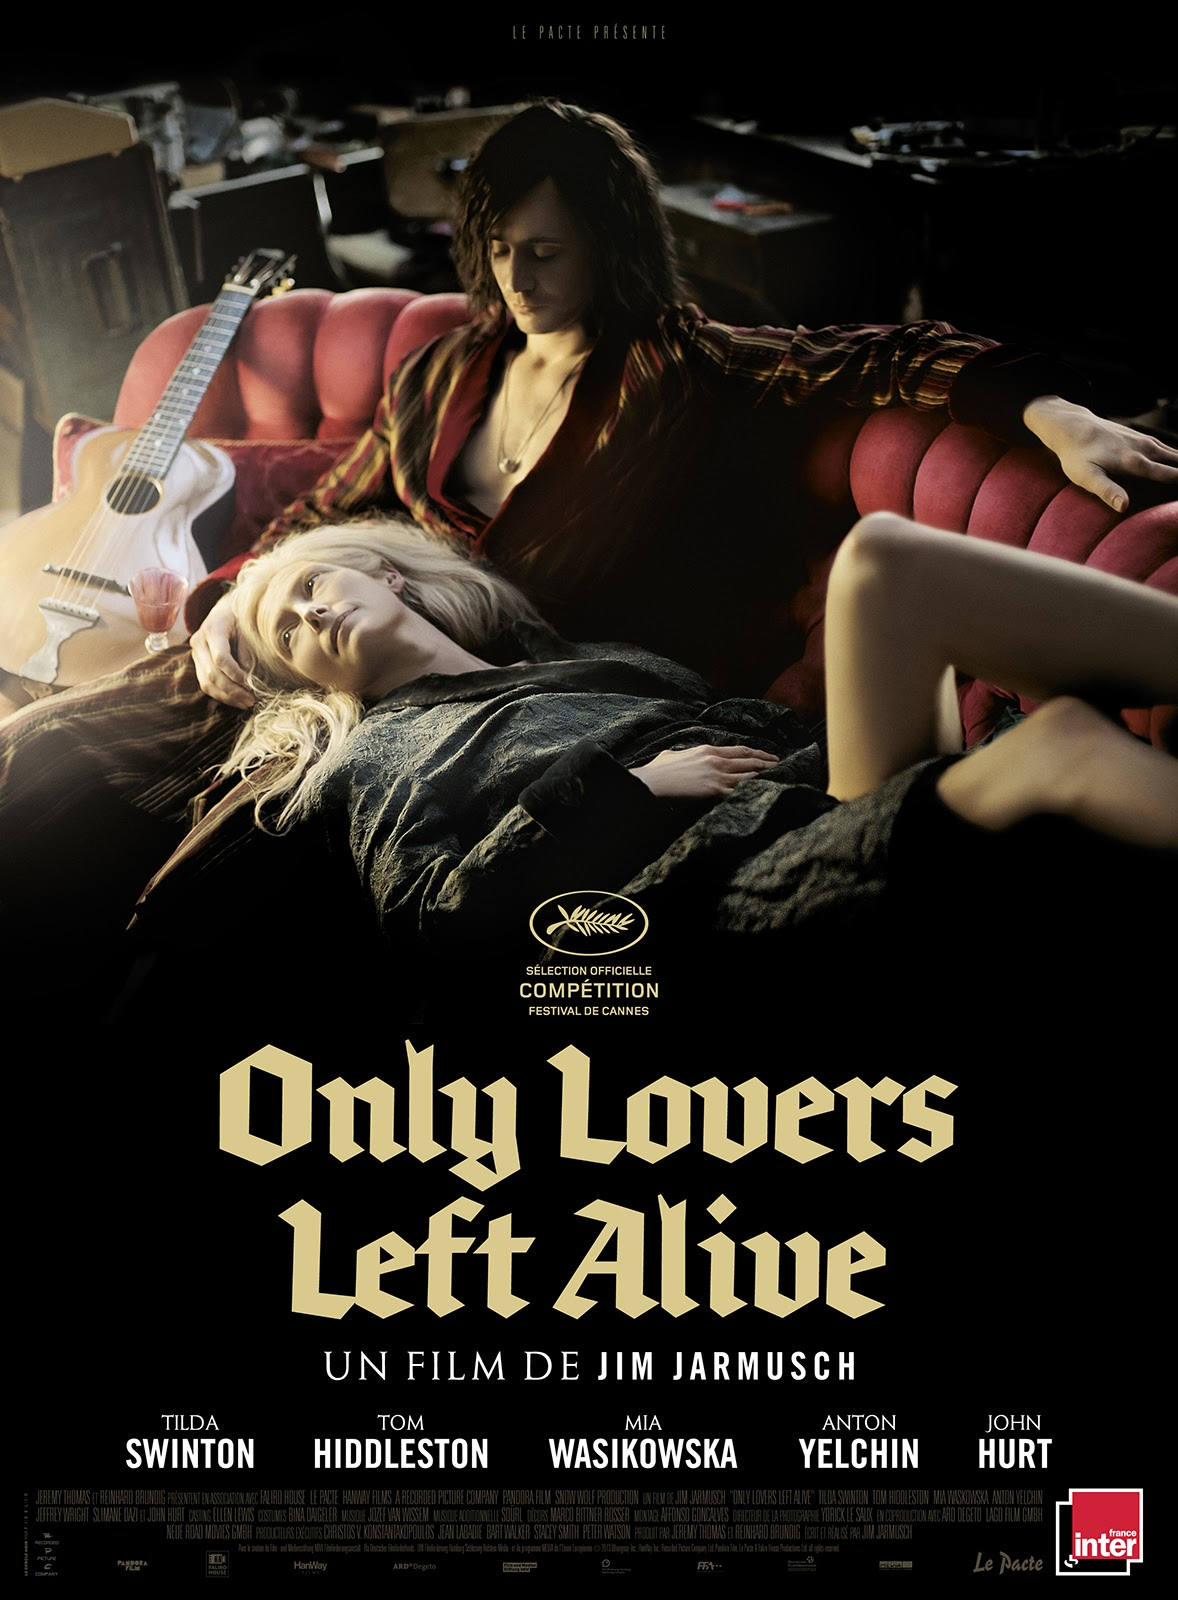 http://fuckingcinephiles.blogspot.fr/2014/02/critique-only-lovers-left-alive.html